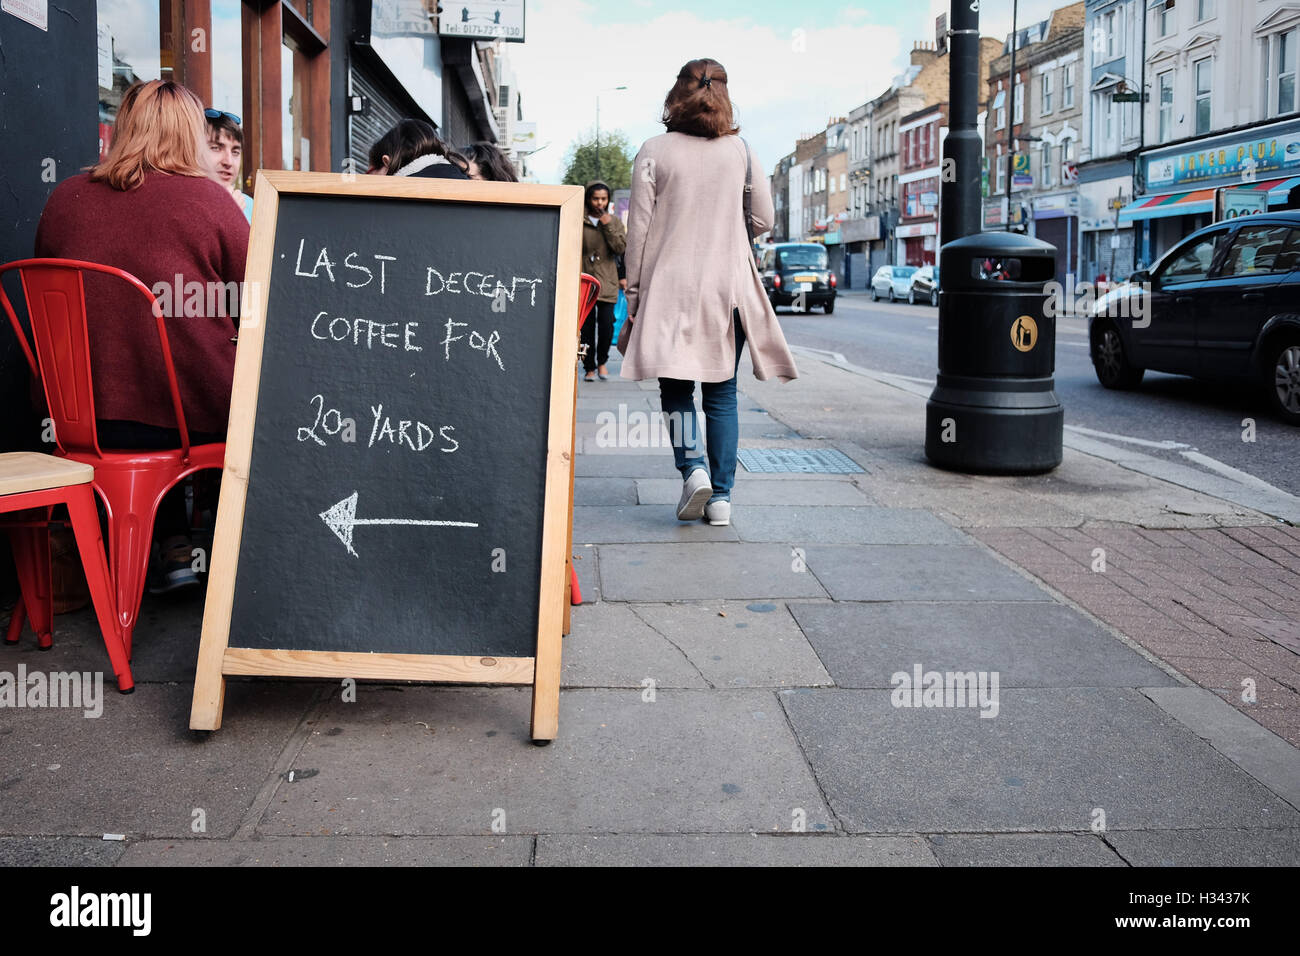 Last Decent Coffee For 20 Yards Sign On A Street Pavement In